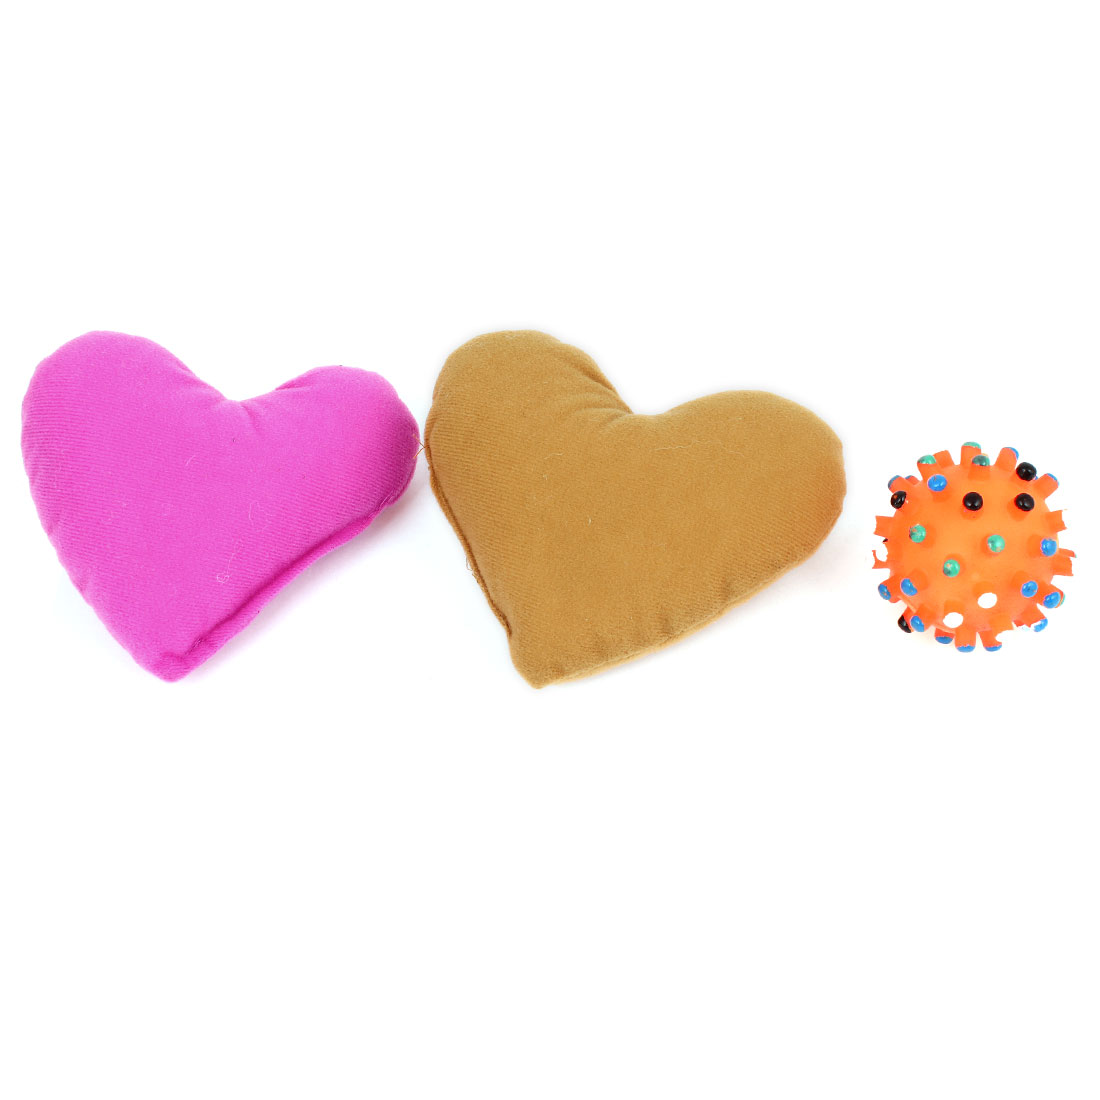 Heart Design Neck Pillow Cushion Squeaky Play Chewing Toy 3 in 1 Set for Pet Dog Doggy